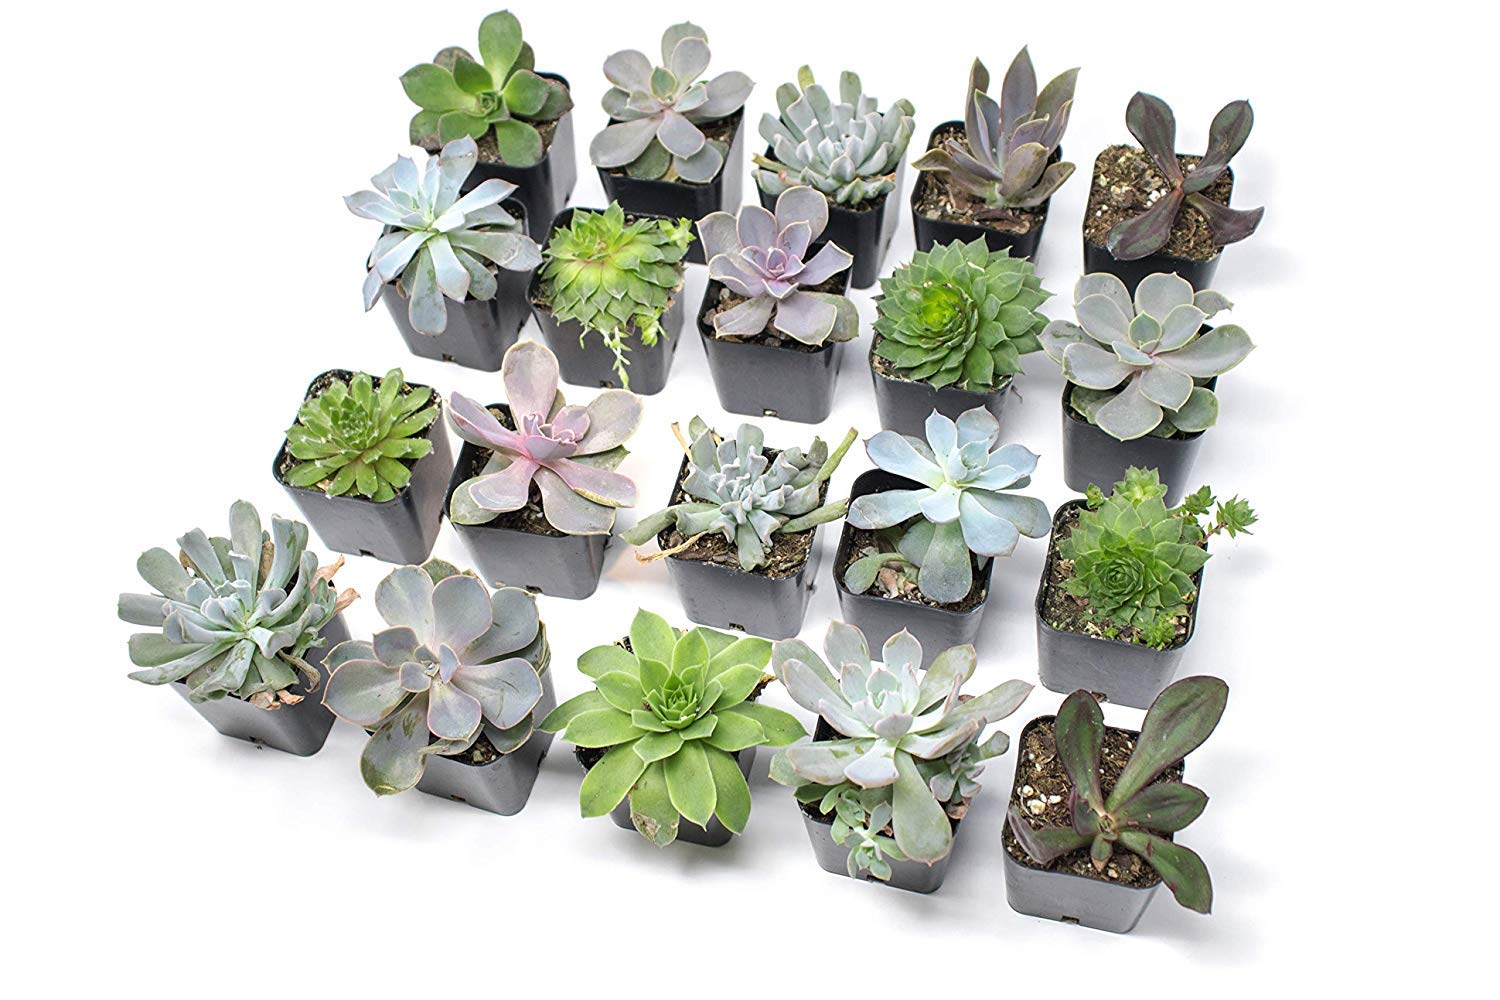 20 Live ''B-Grade'' Succulents | House Plants with Minor Flaws | Healthy Discounted Cheap Succulent Plants in Planter Pots with Soil by Plants for Pets by Plants for Pets (Image #2)